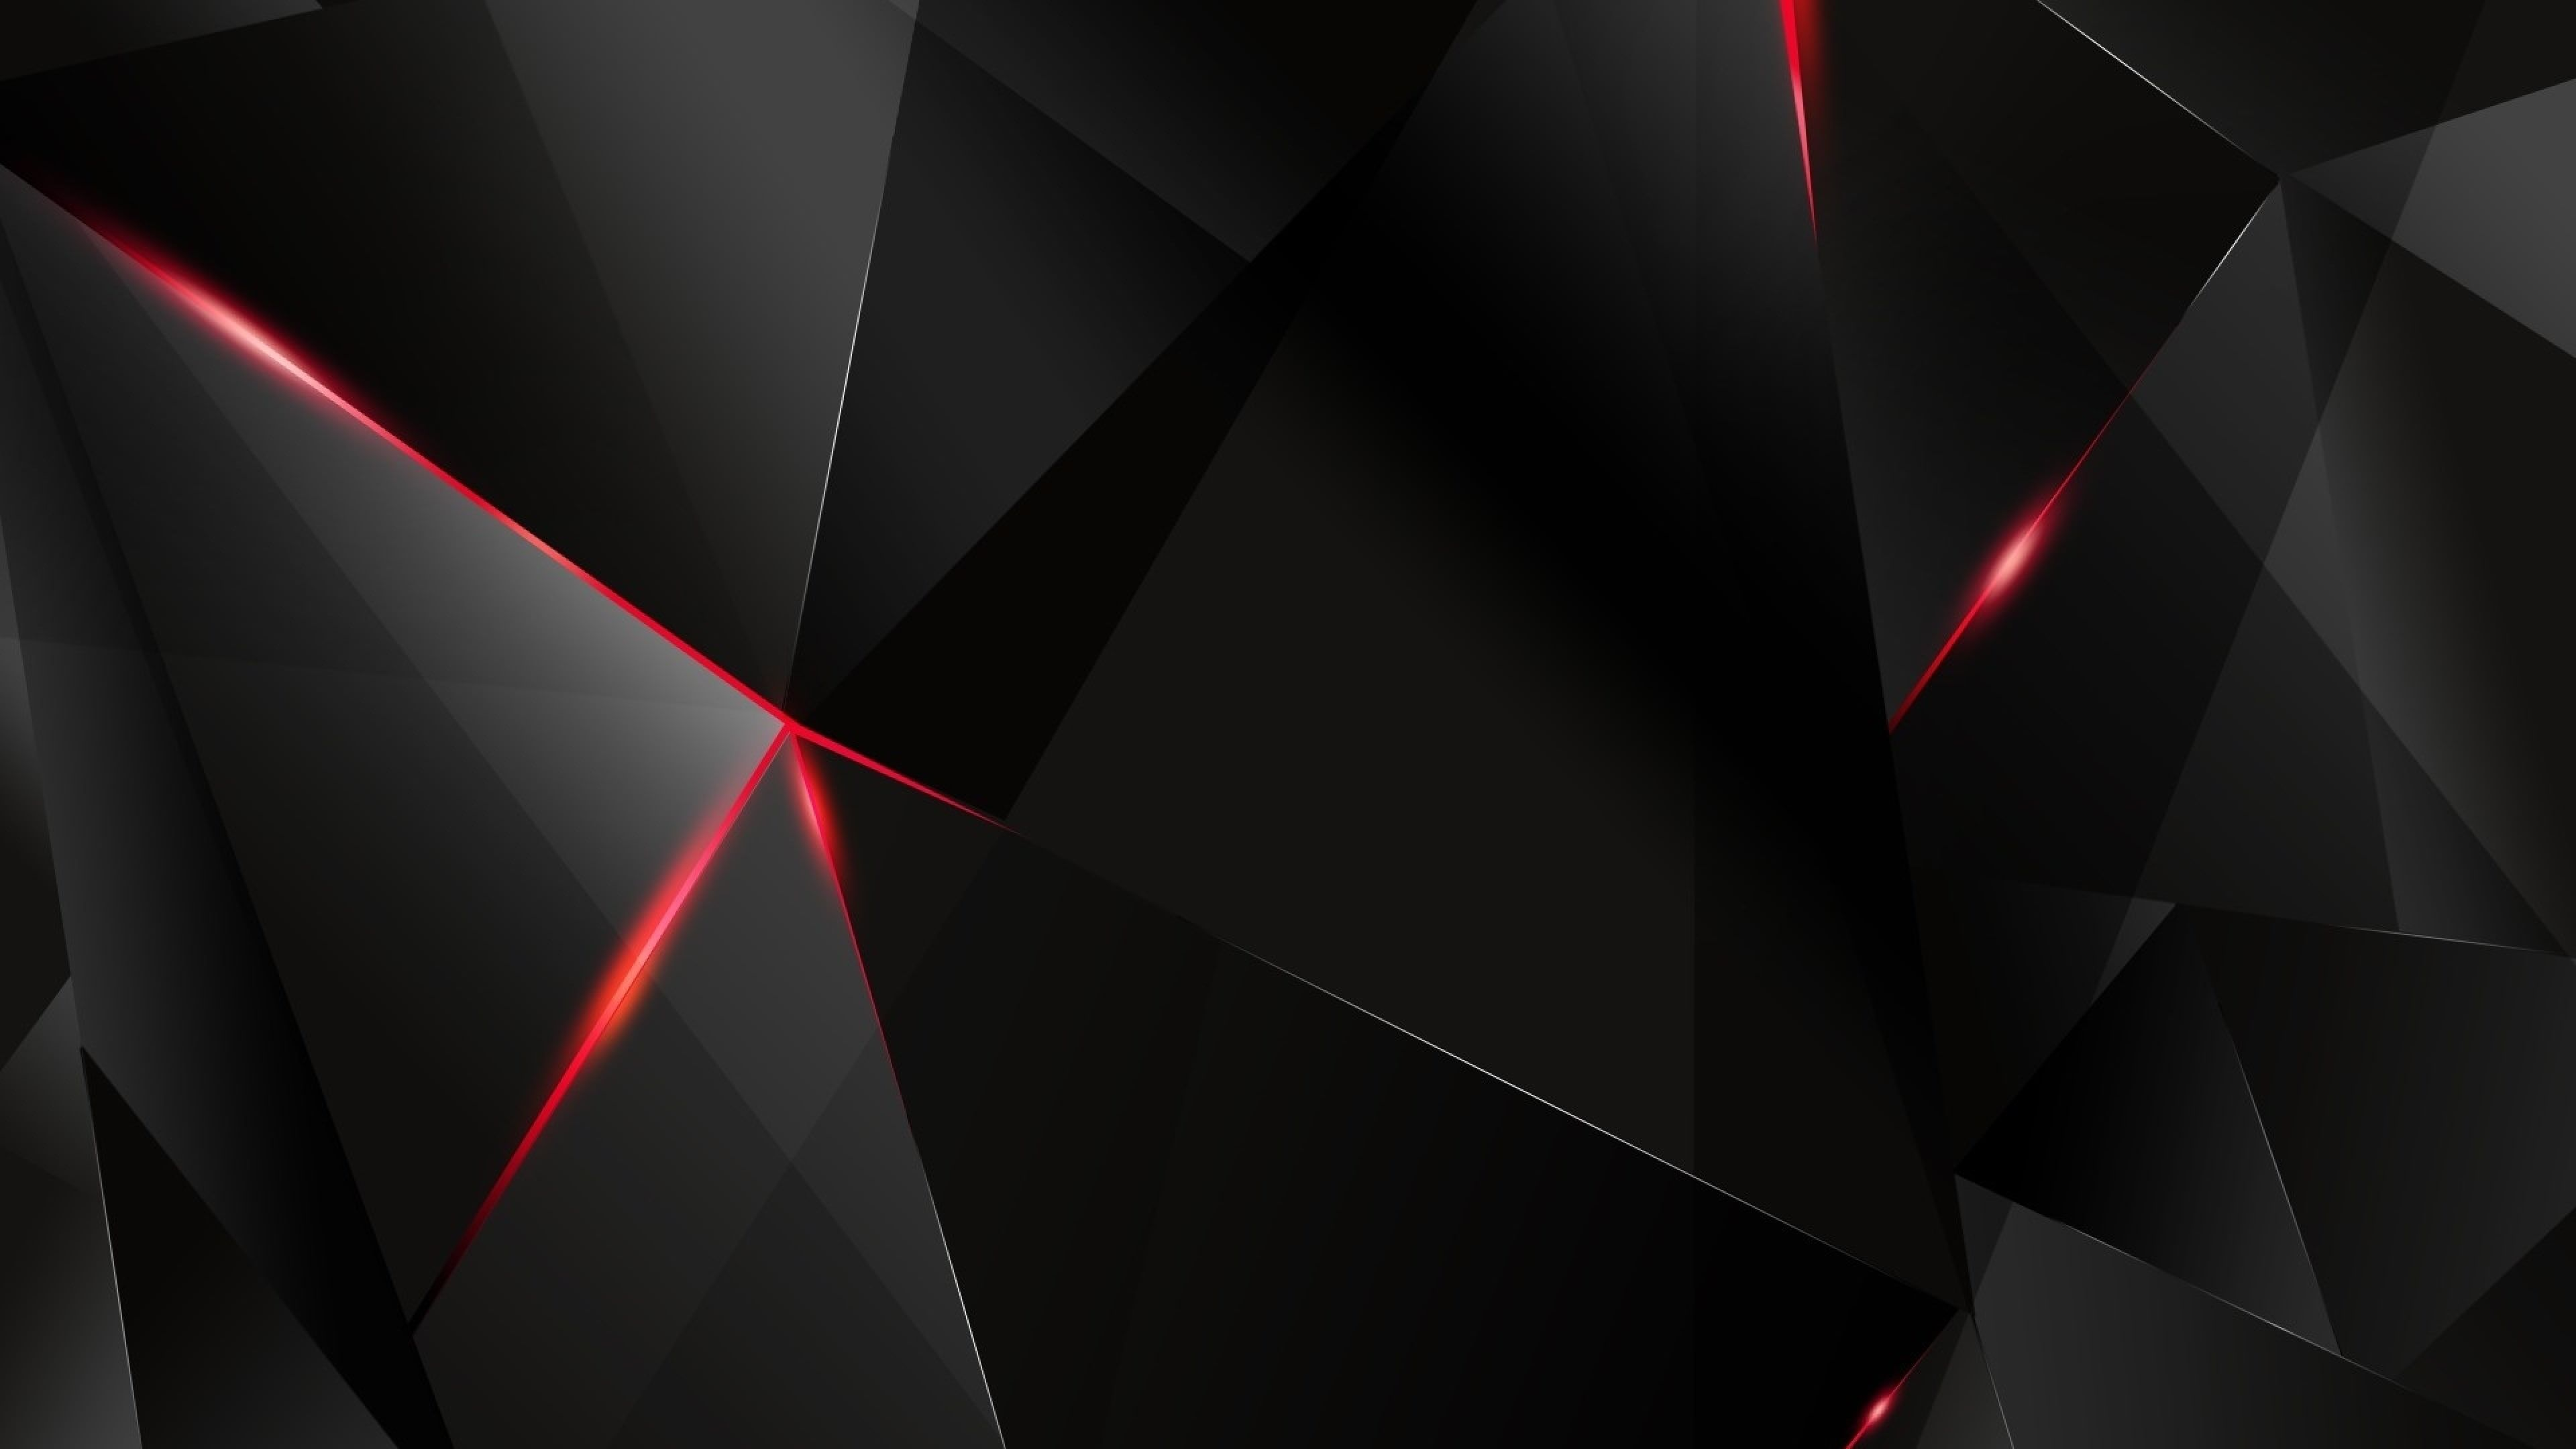 Abstract Design Graphic Digital Art 3d Light Wallpaper Shape Backdrop Pattern Col Red And Black Wallpaper 2048x1152 Wallpapers Dark Black Wallpaper